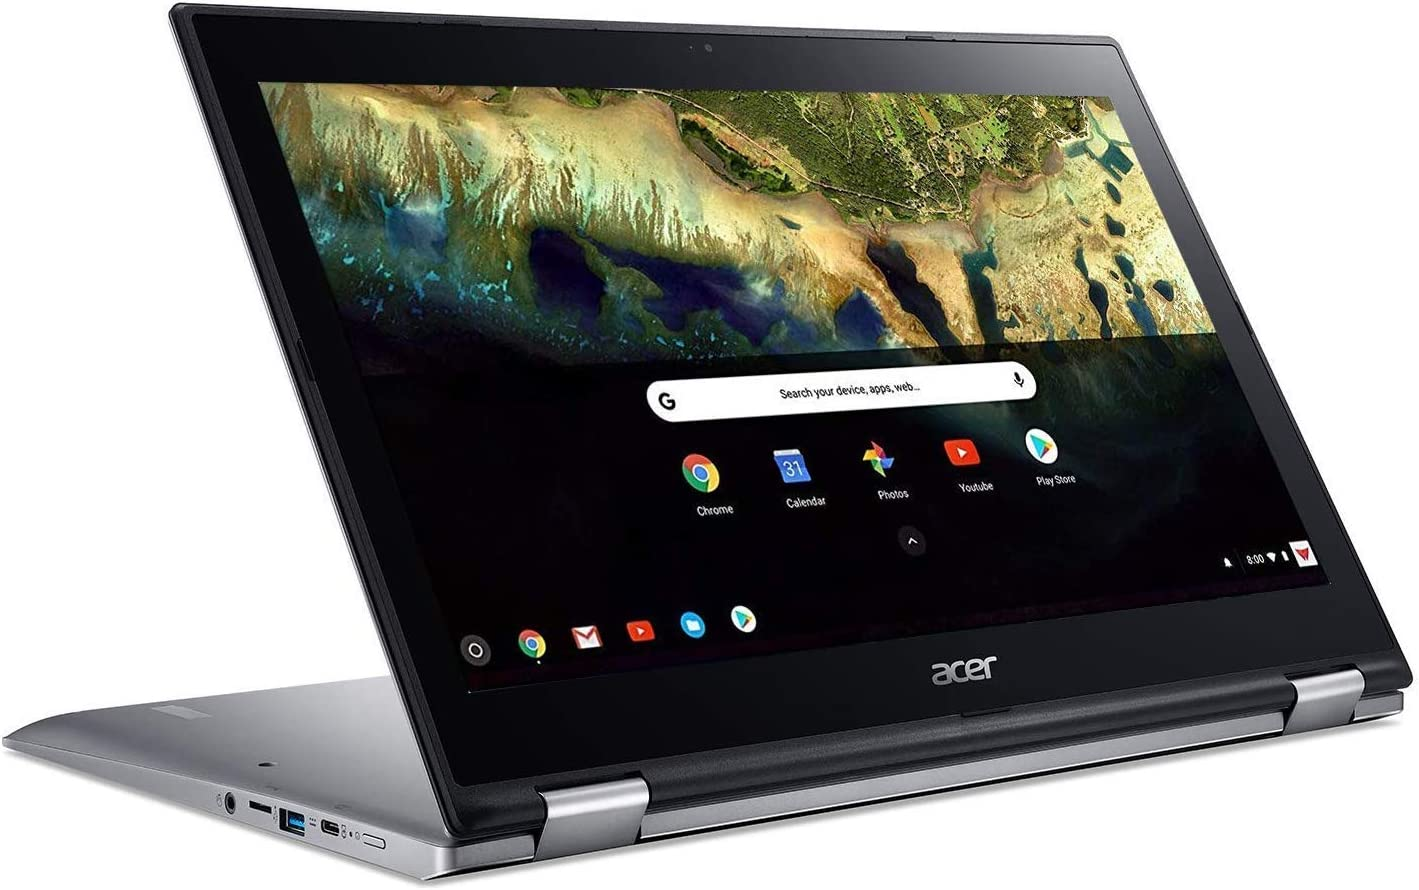 "Newest Acer 15.6"" IPS FHD Touchscreen Convertible Chromebook, Intel Pentium Quad-Core Up to 2.5GHz Processor, 4GB LPDDR4 RAM, 32GB SSD, Backlight Keyboard, Chrome OS(Renewed)"